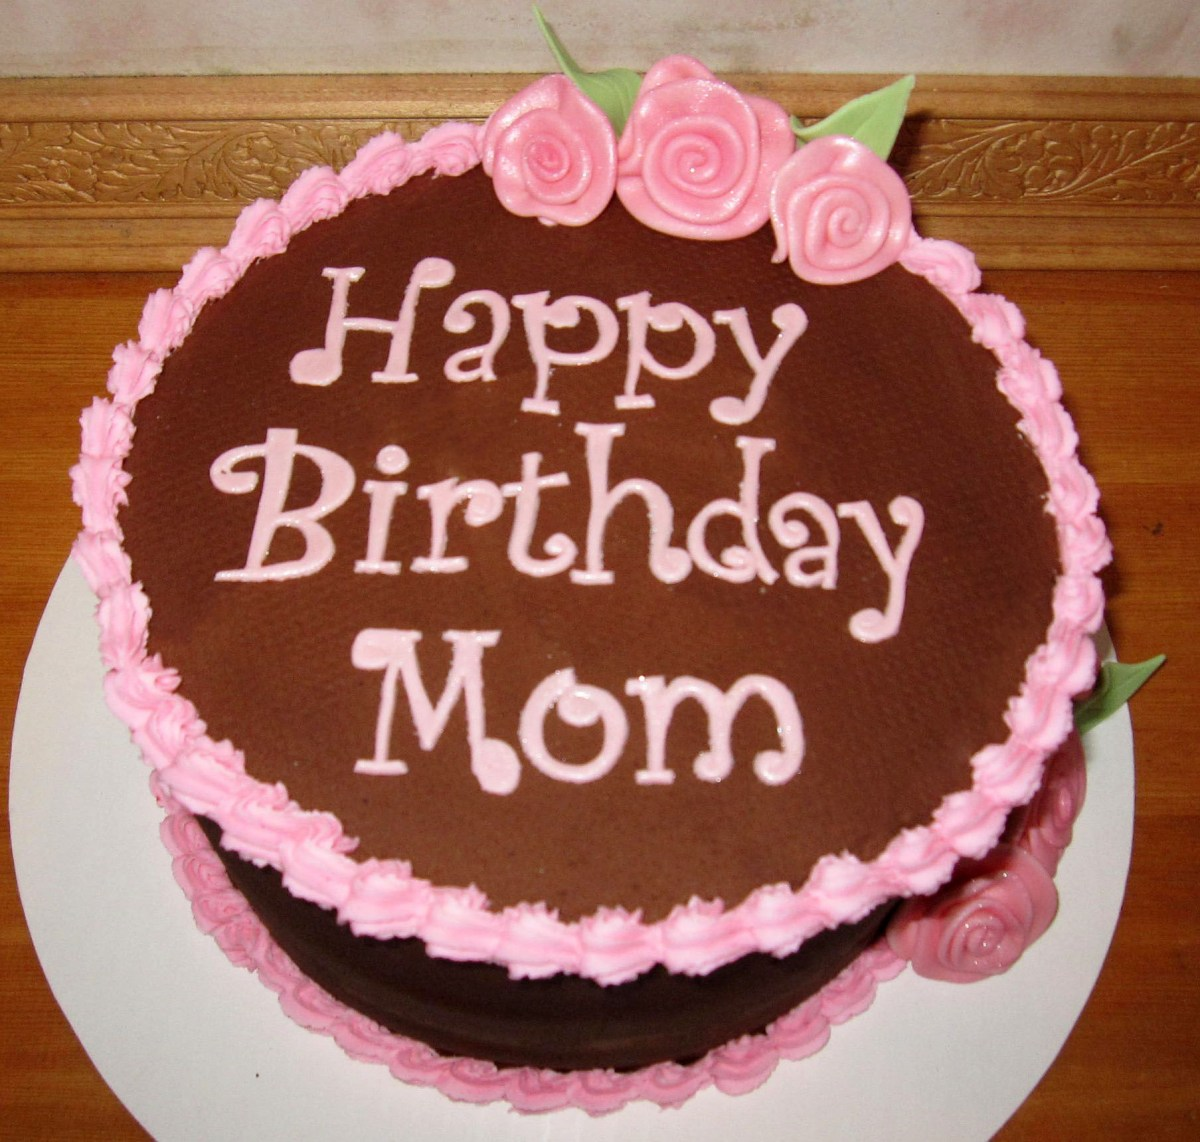 Magnificent Birthday Cake For Mom Birthday Cake For Momsmooth Chocolate Funny Birthday Cards Online Elaedamsfinfo